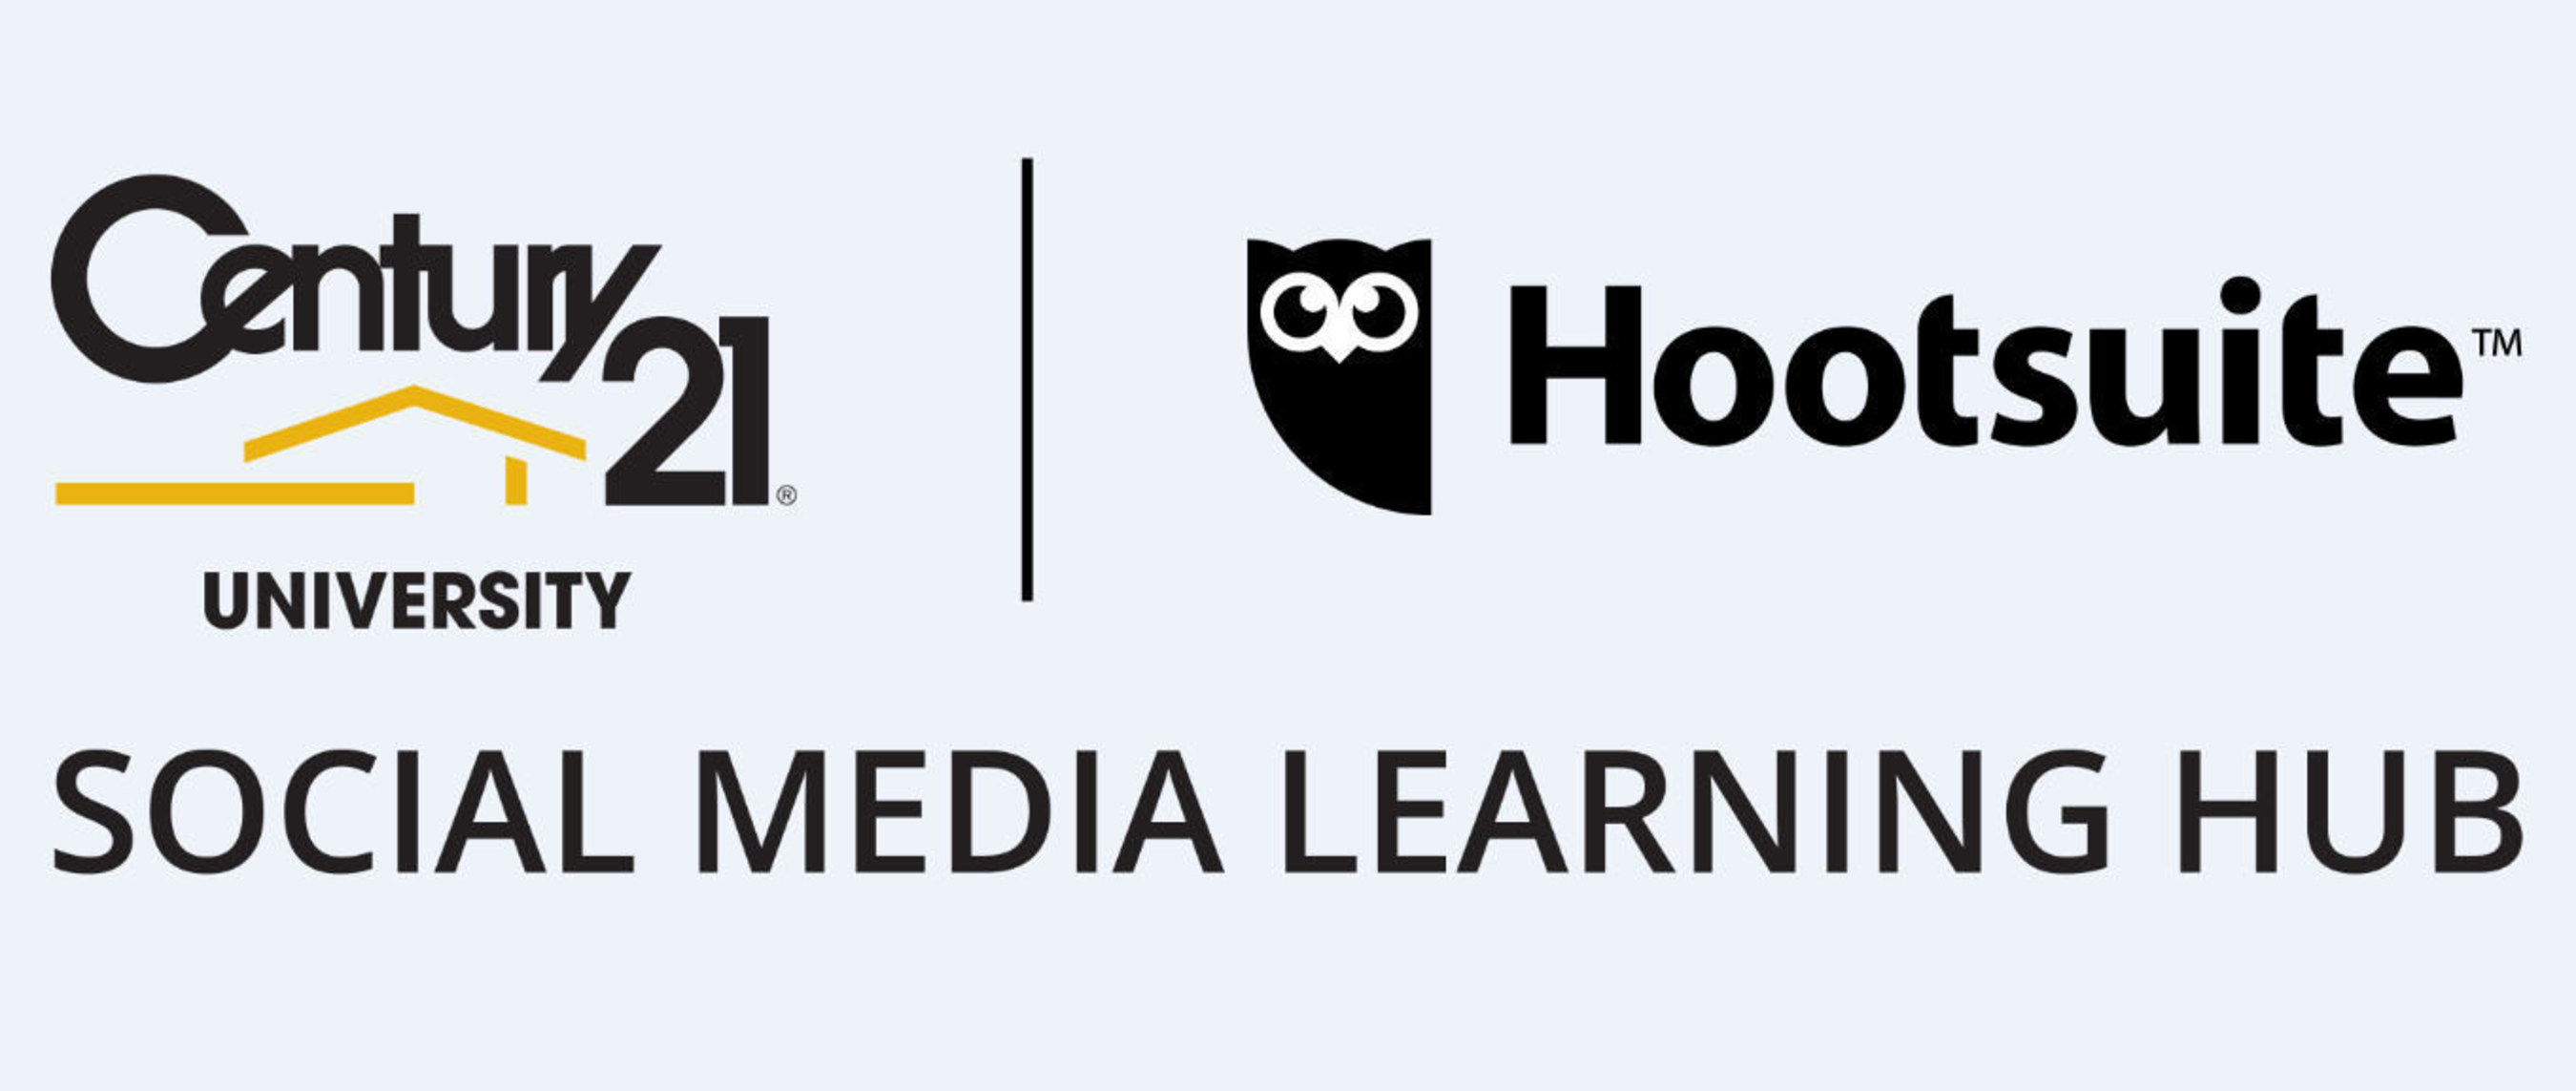 CENTURY 21 Real Estate and Hootsuite Social Media Learning Hub